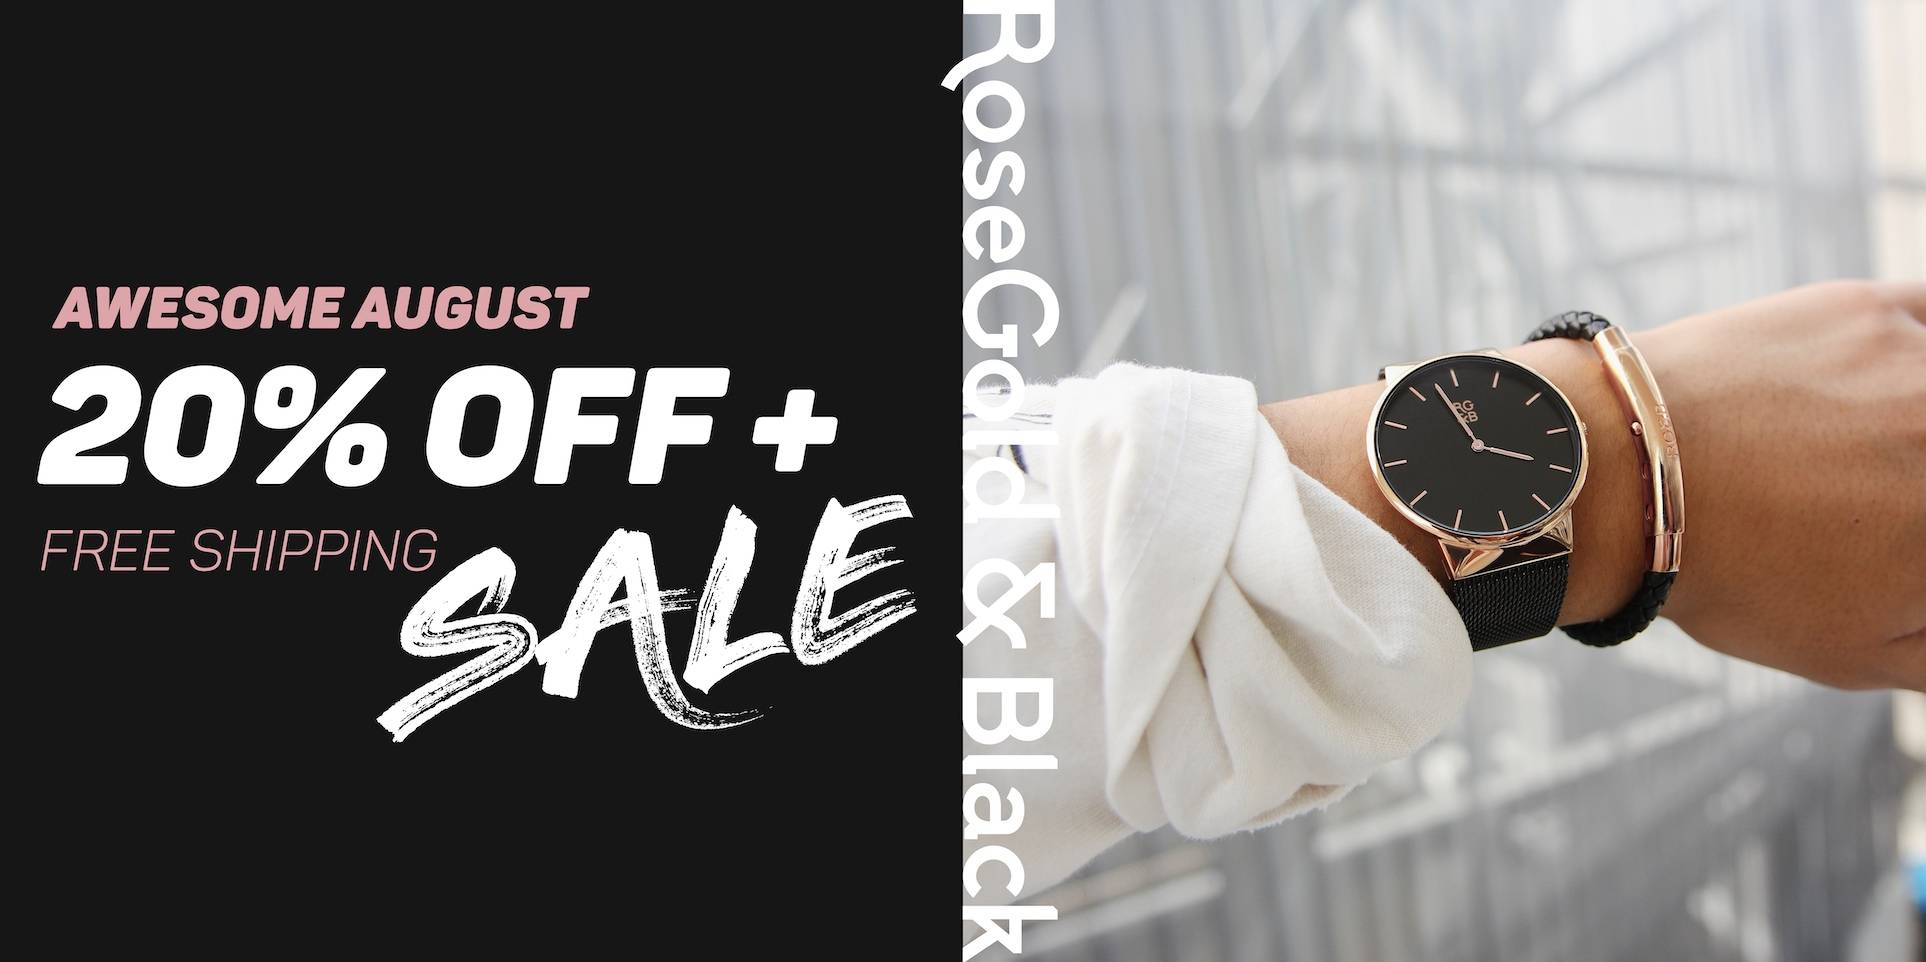 Awesome August 20% Off